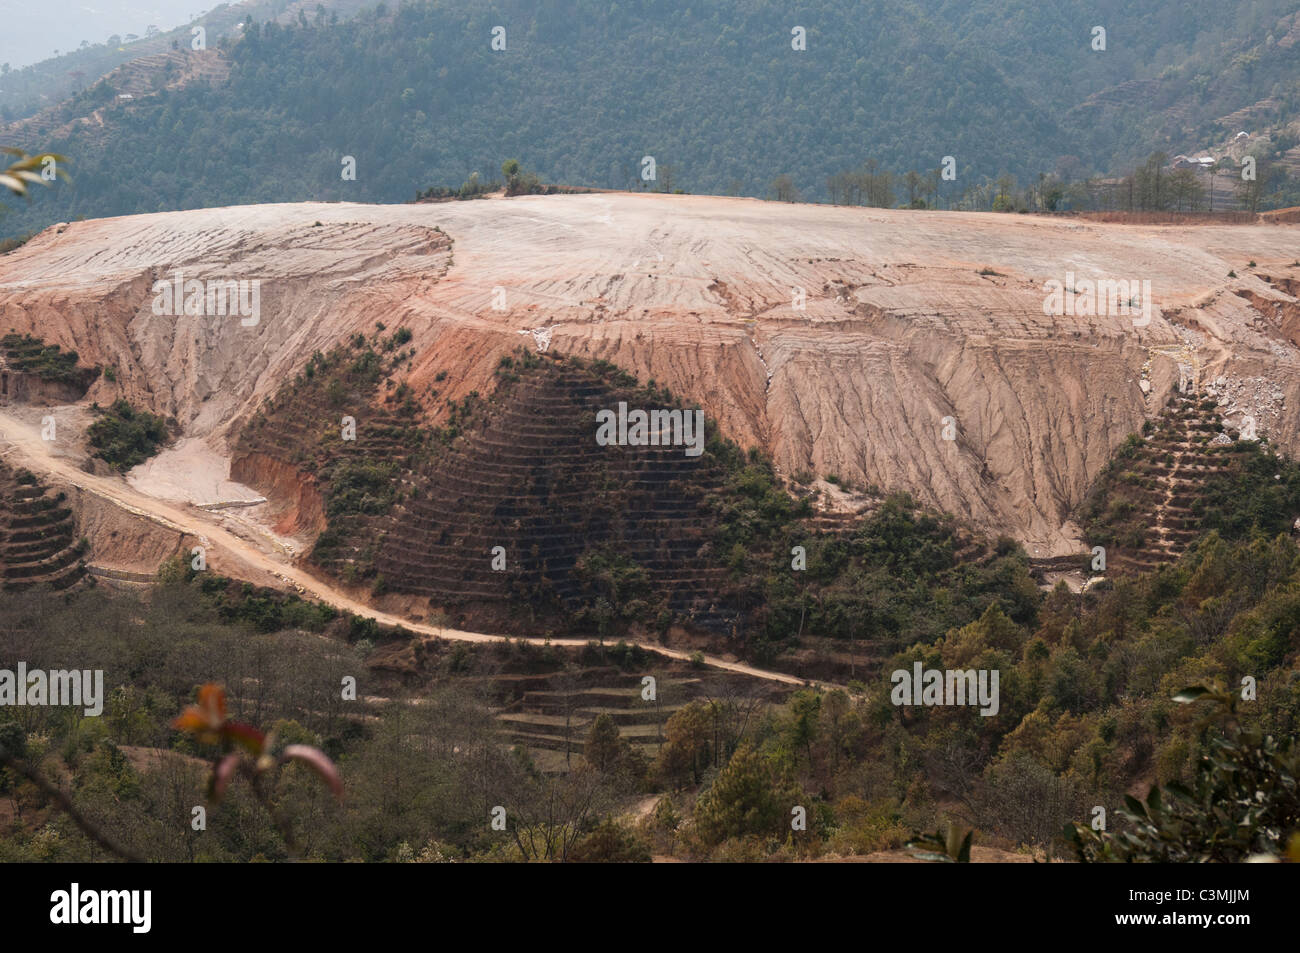 Inappropriate development underway in hill country outside Kathmandu - Stock Image